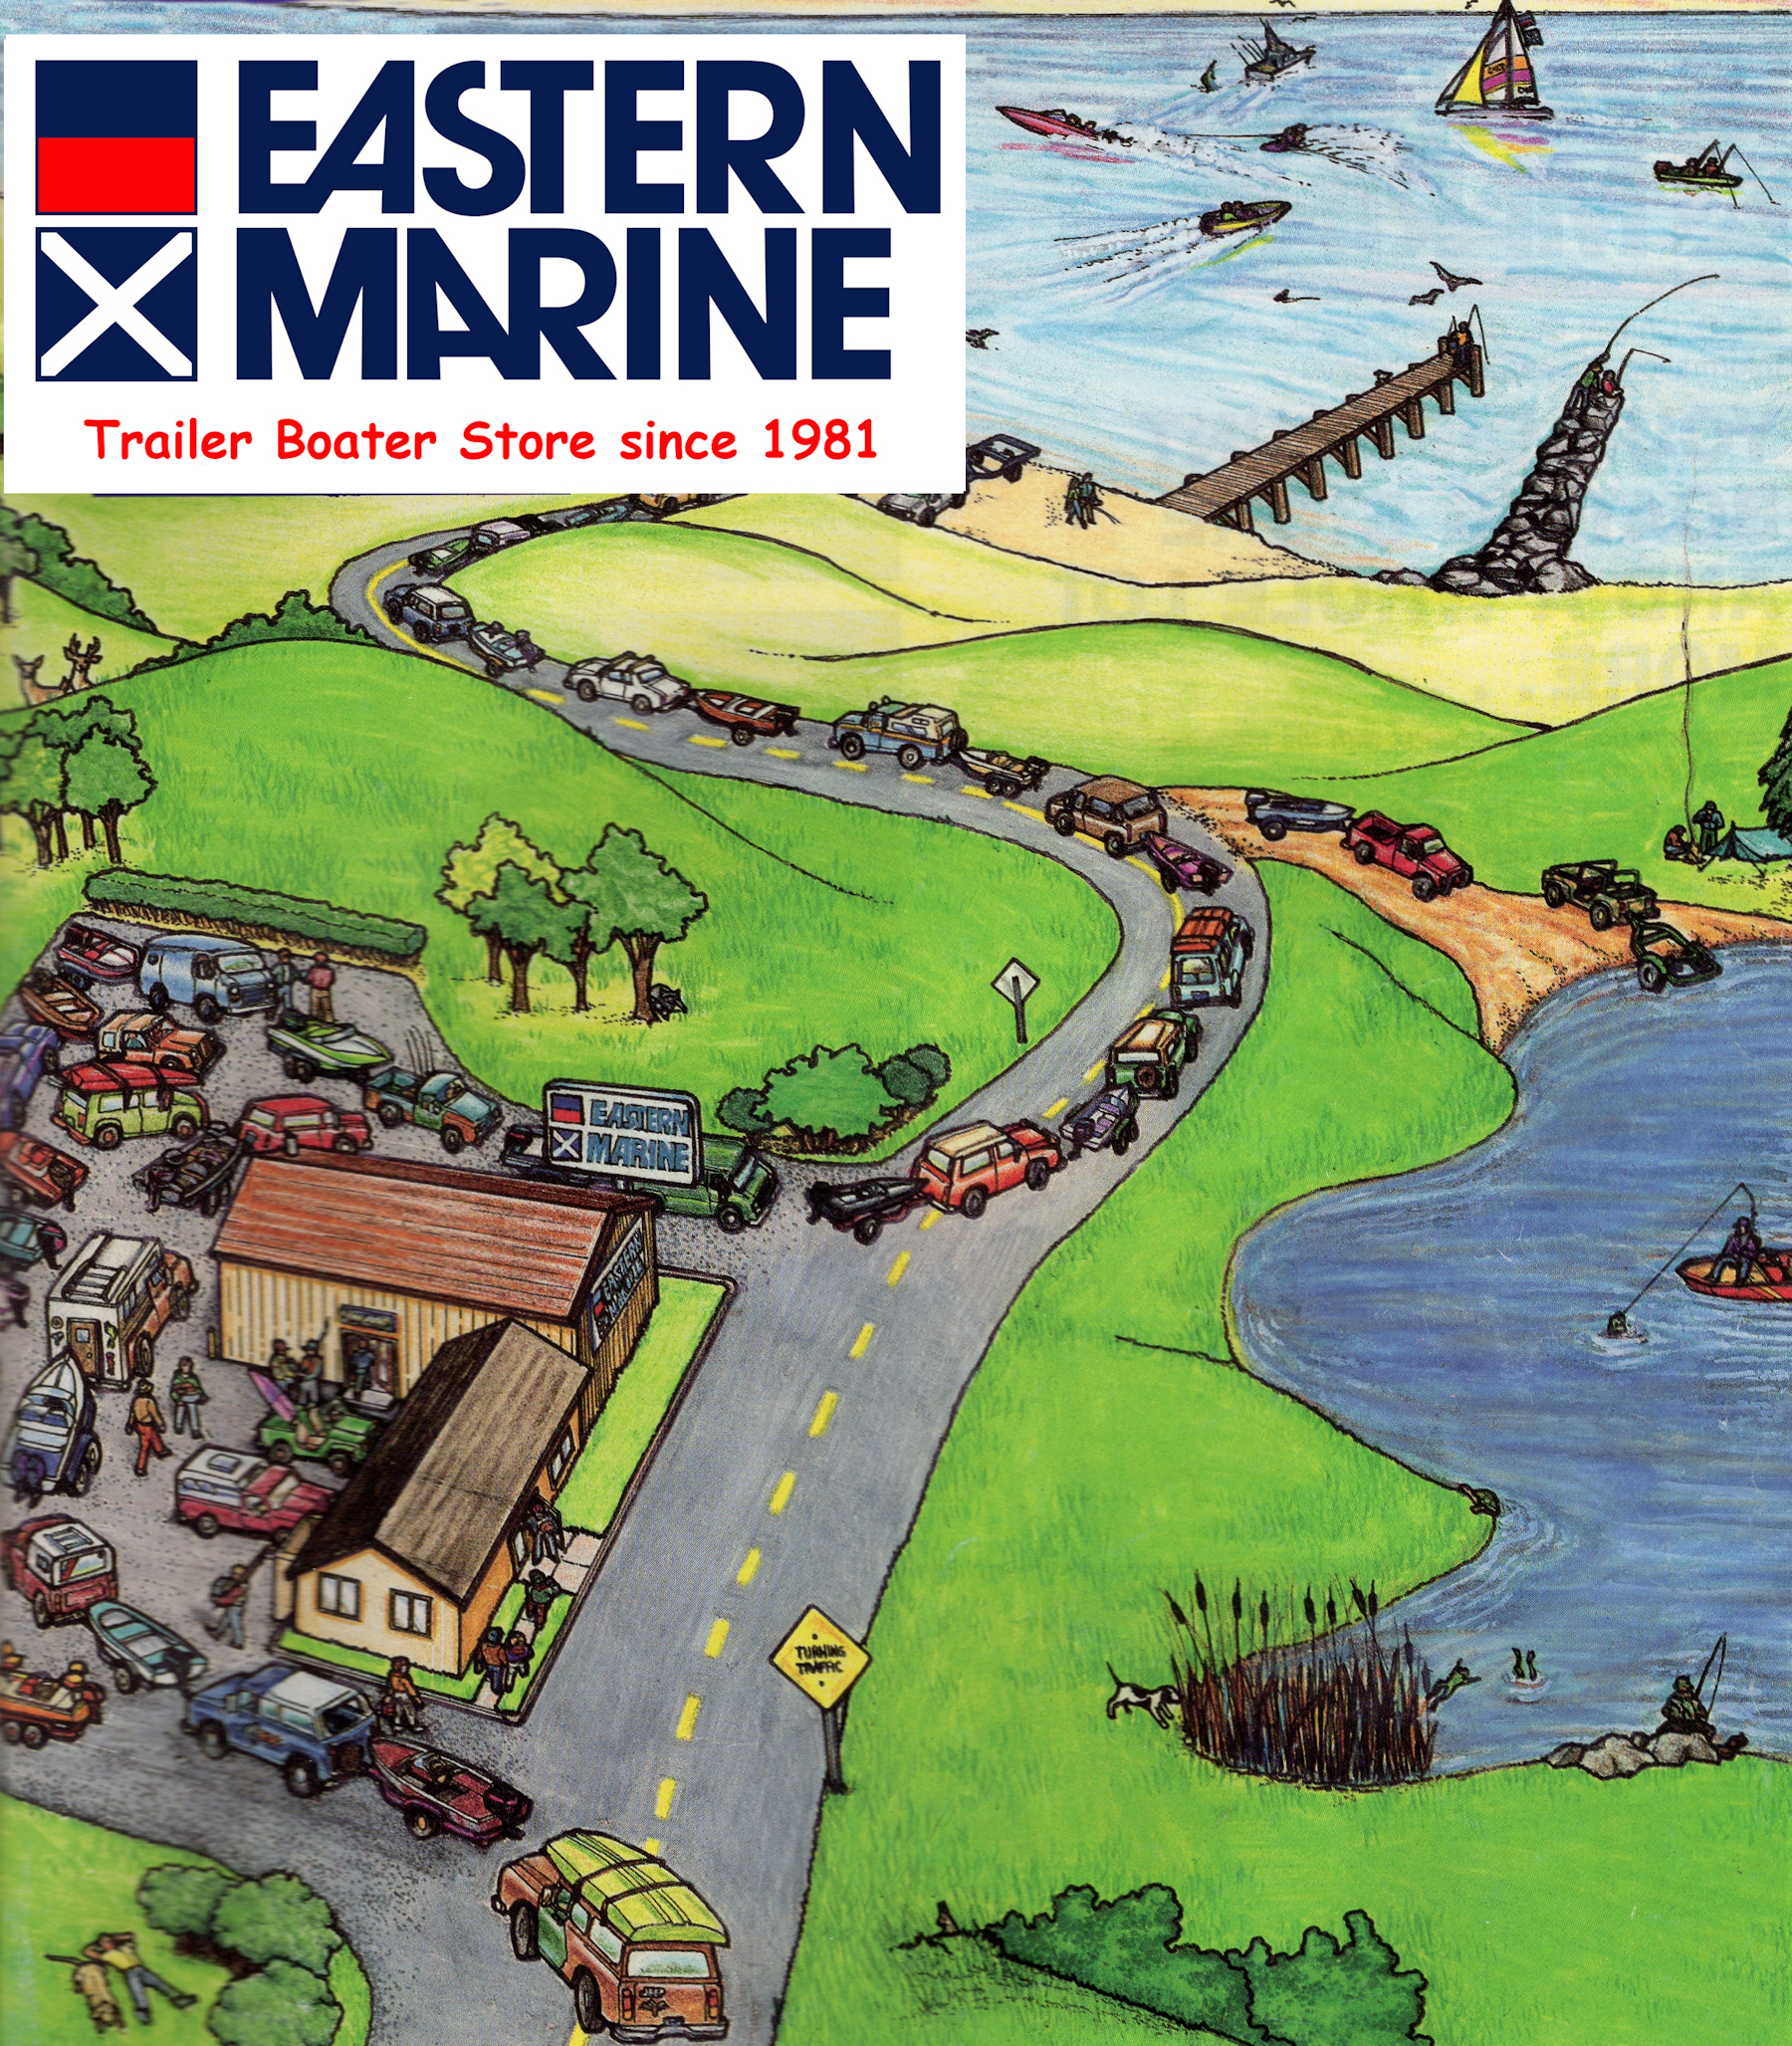 Trailer Boater Store